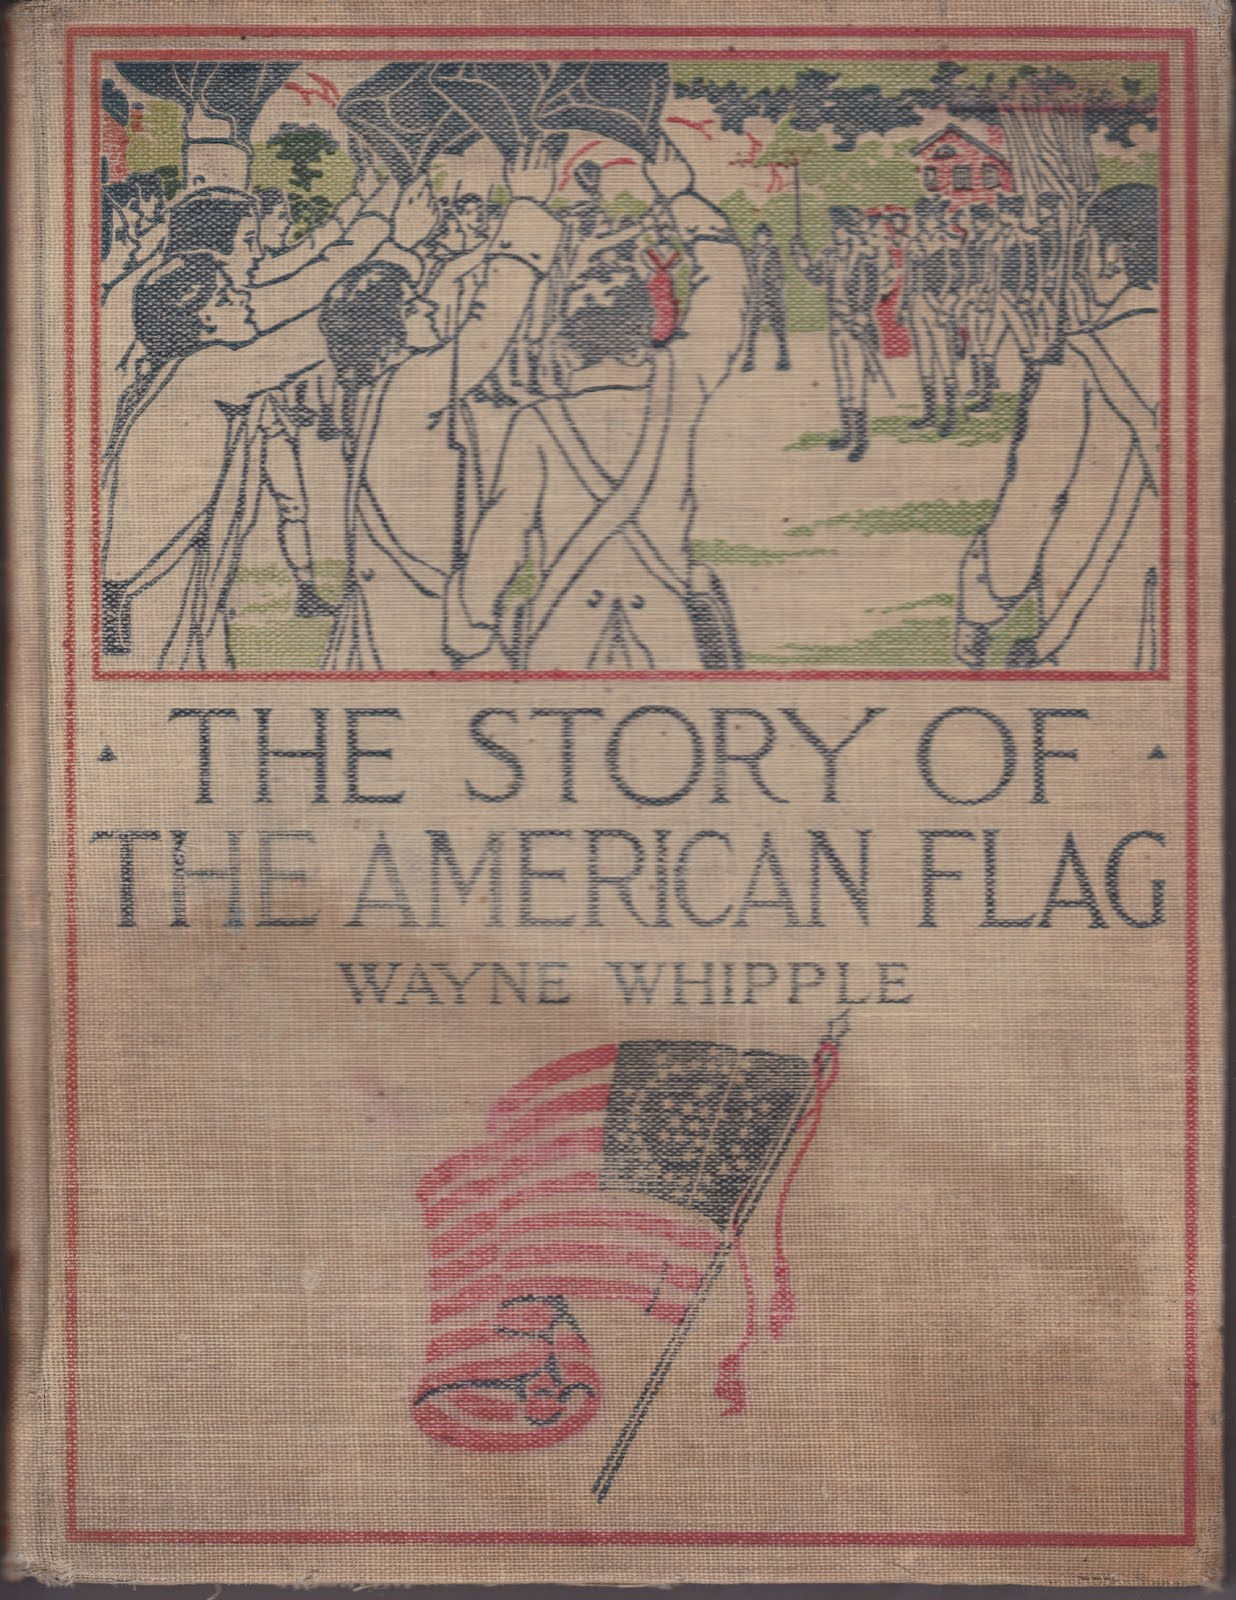 Papergreat american flag history compliments of leinbach for The american flag history